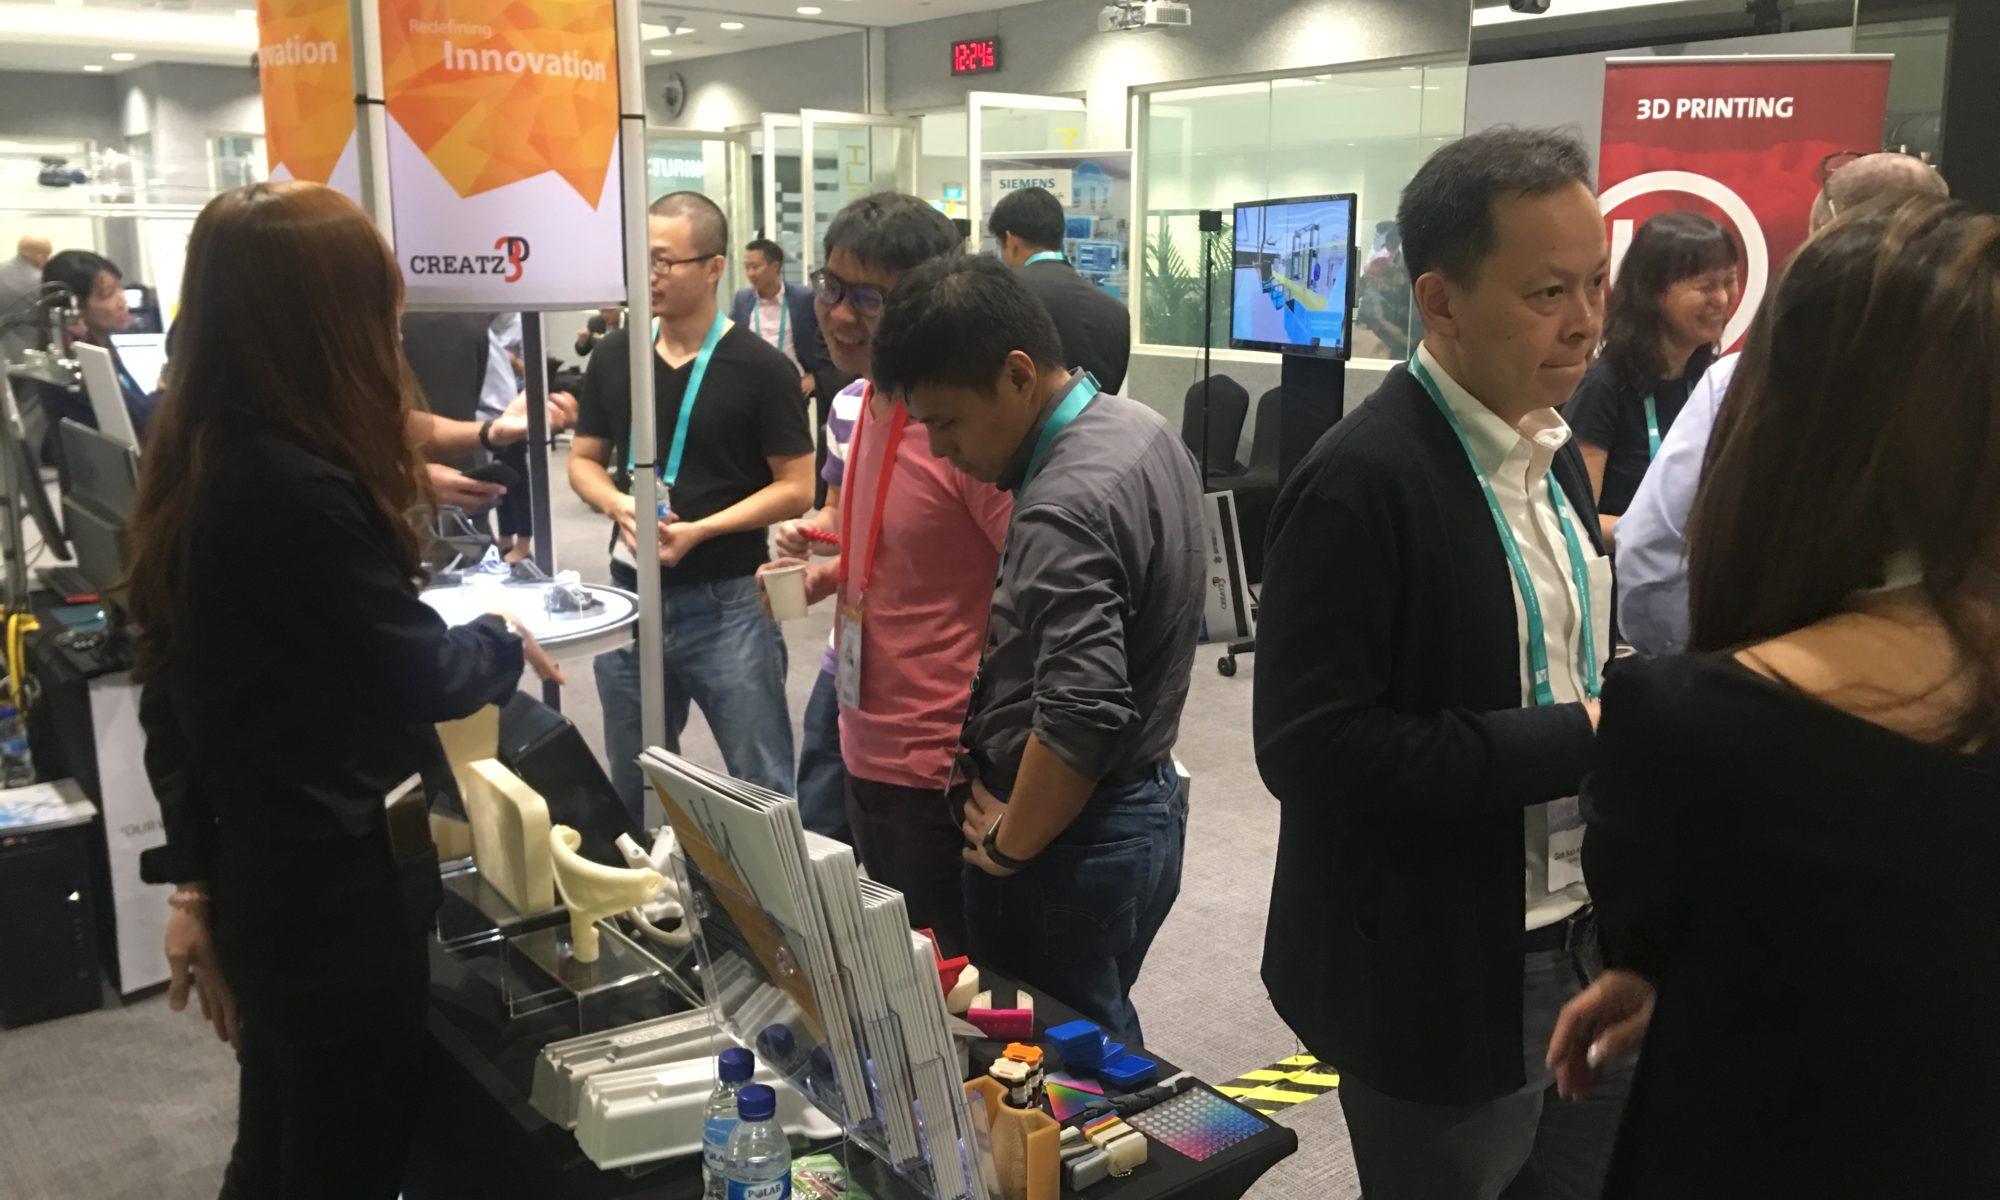 Visitors learning about 3D printing solutions at Creatz3D's booth at ARTC Model Factory launch event